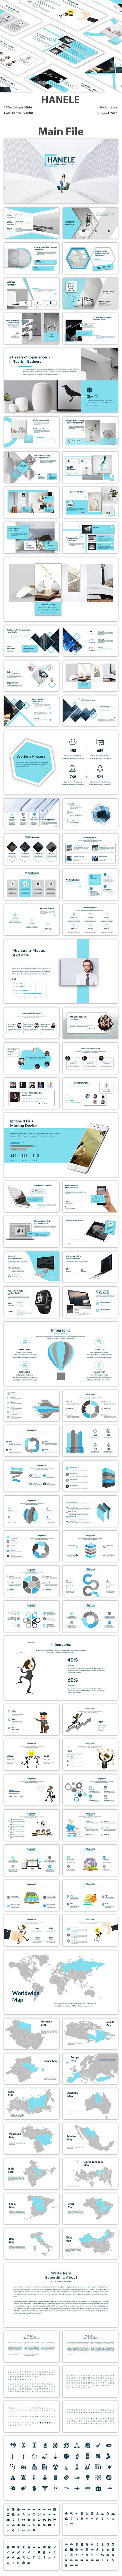 Hanele Creative Google Slide Template - Google Slides Presentation Templates